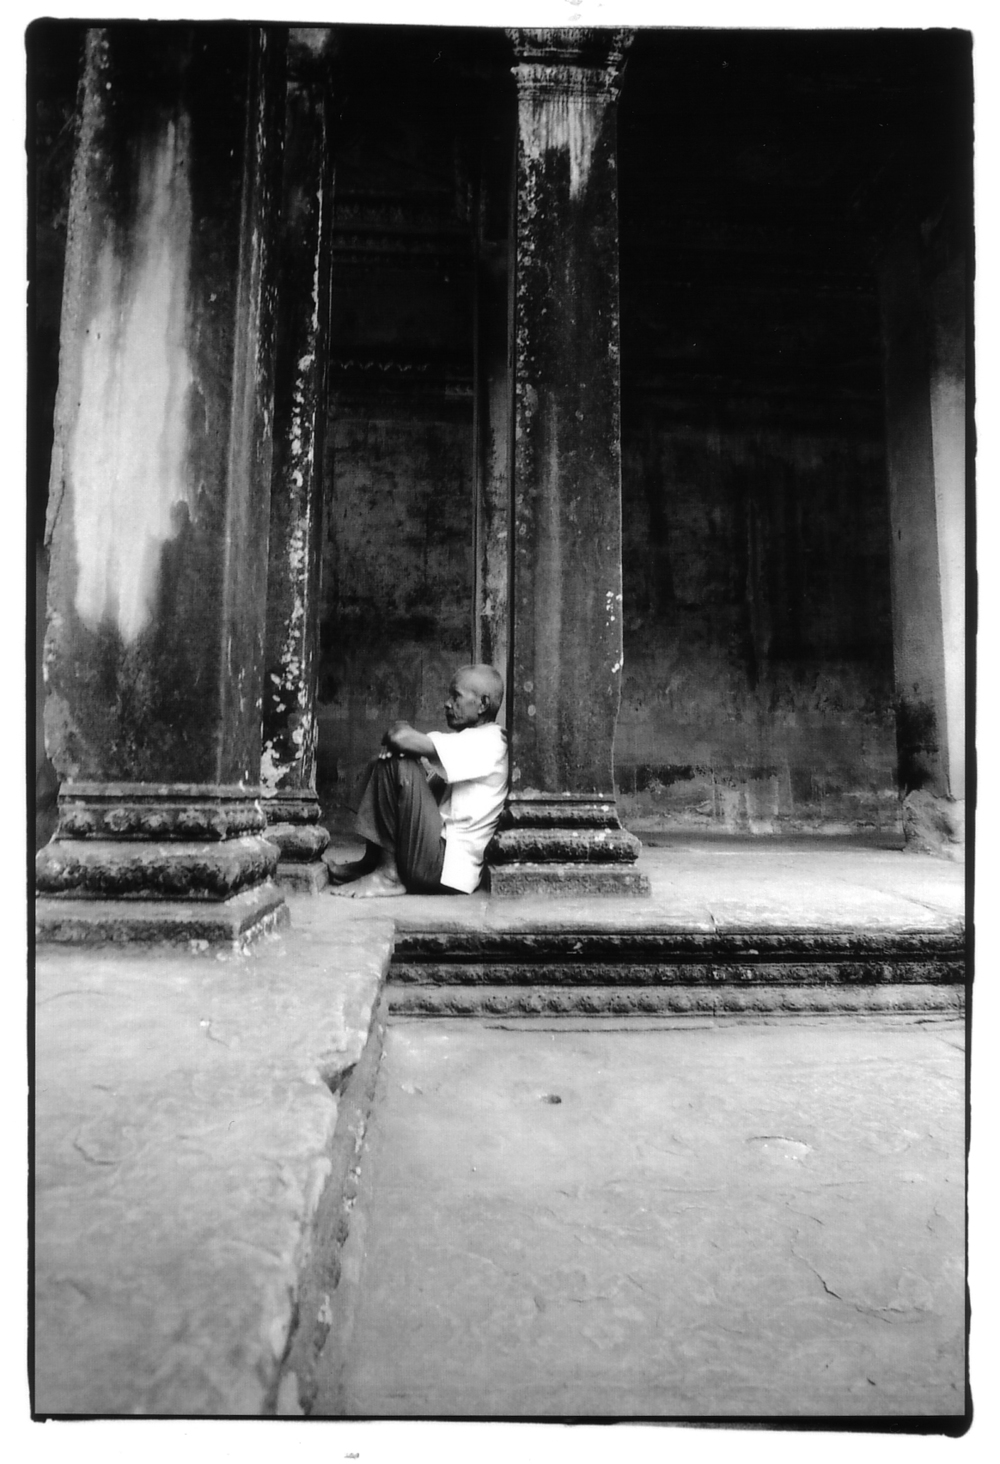 Angkor_Wat_Old_Man_Sitting.jpg